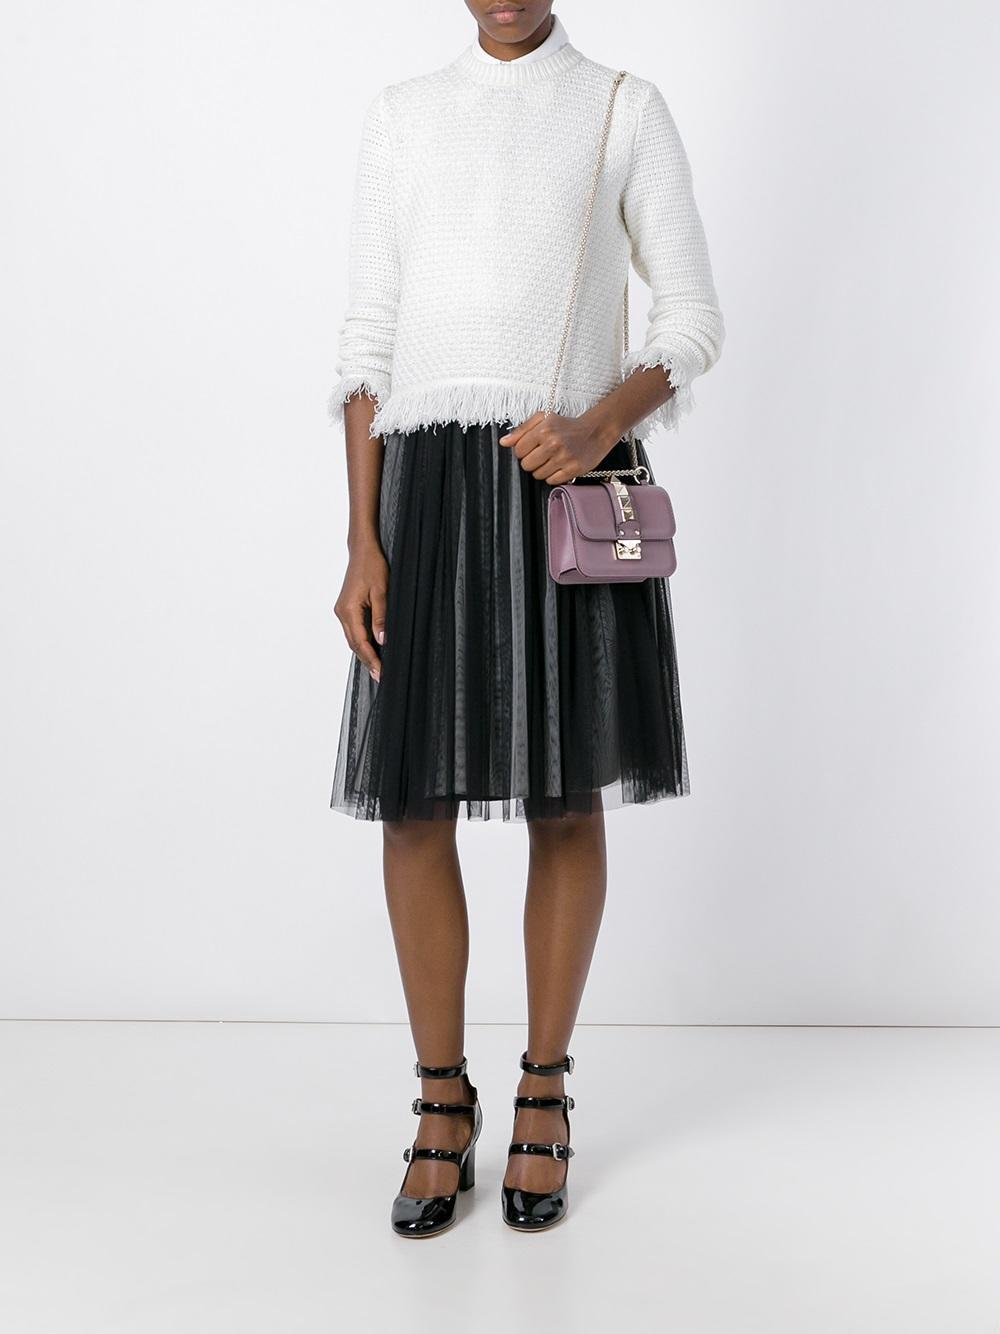 Valentino Bags | Sale Up To 70% Off At THE OUTNET